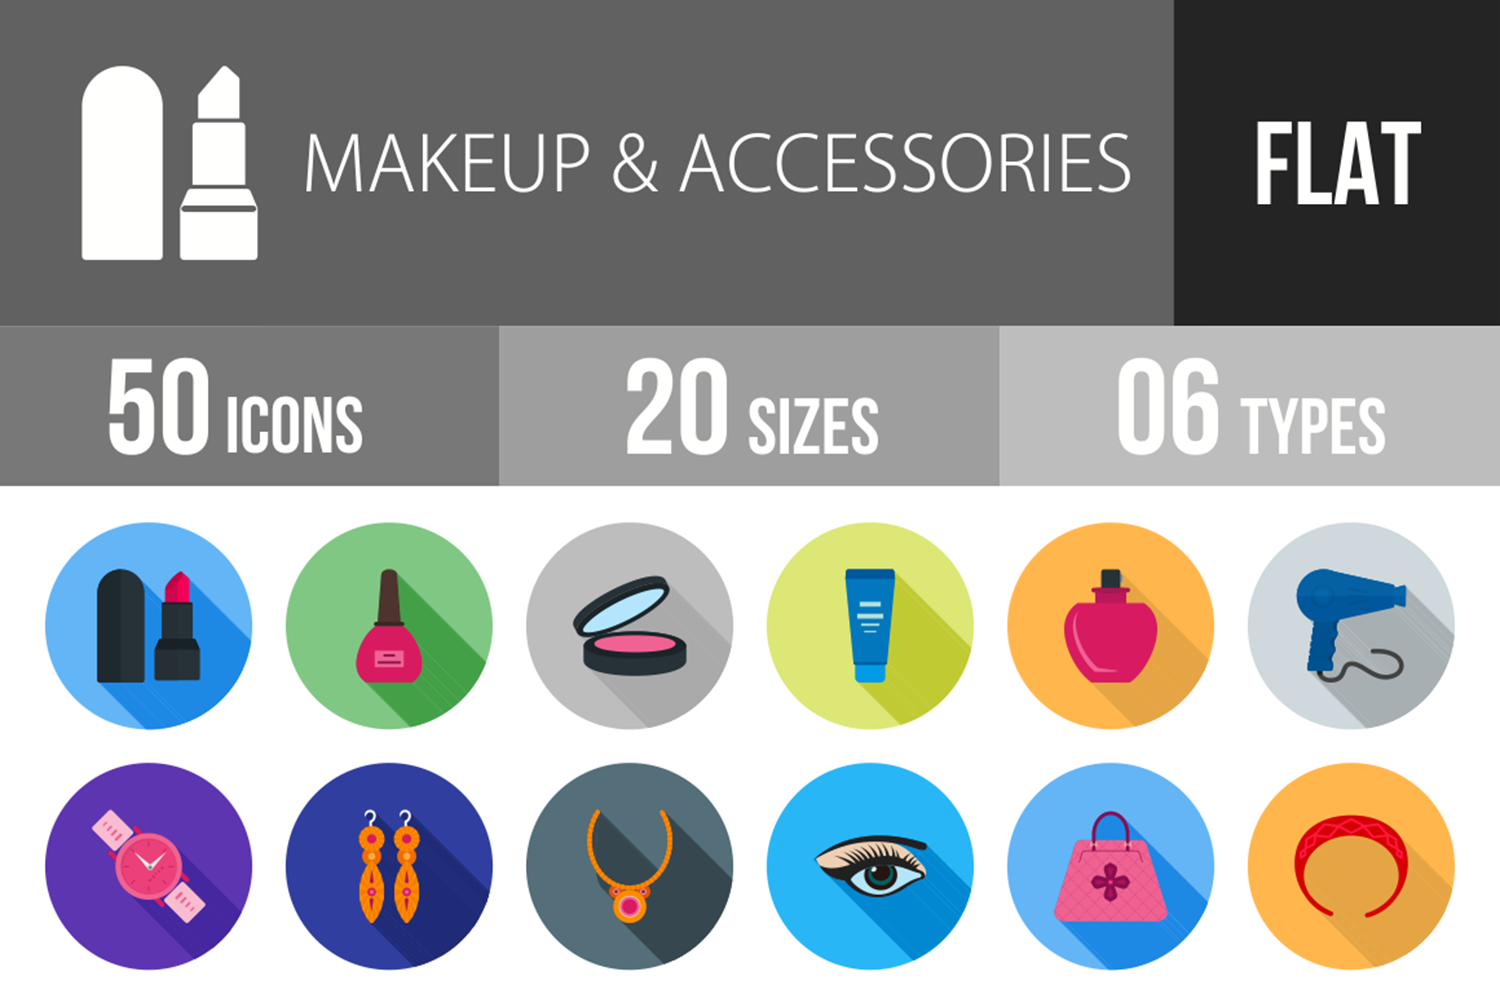 50 Makeup & Accessories Flat Long Shadow Icons example image 1